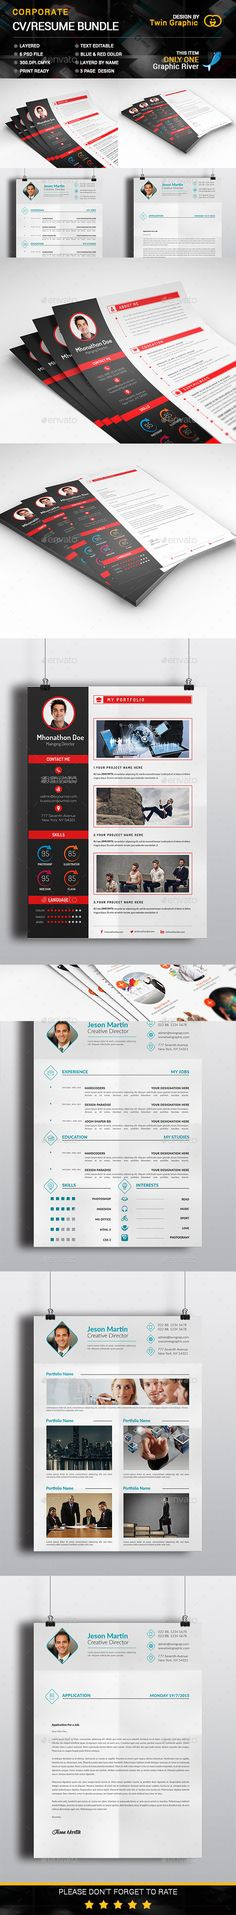 CV/Resumé + Business Card Pack Business cards, Business and